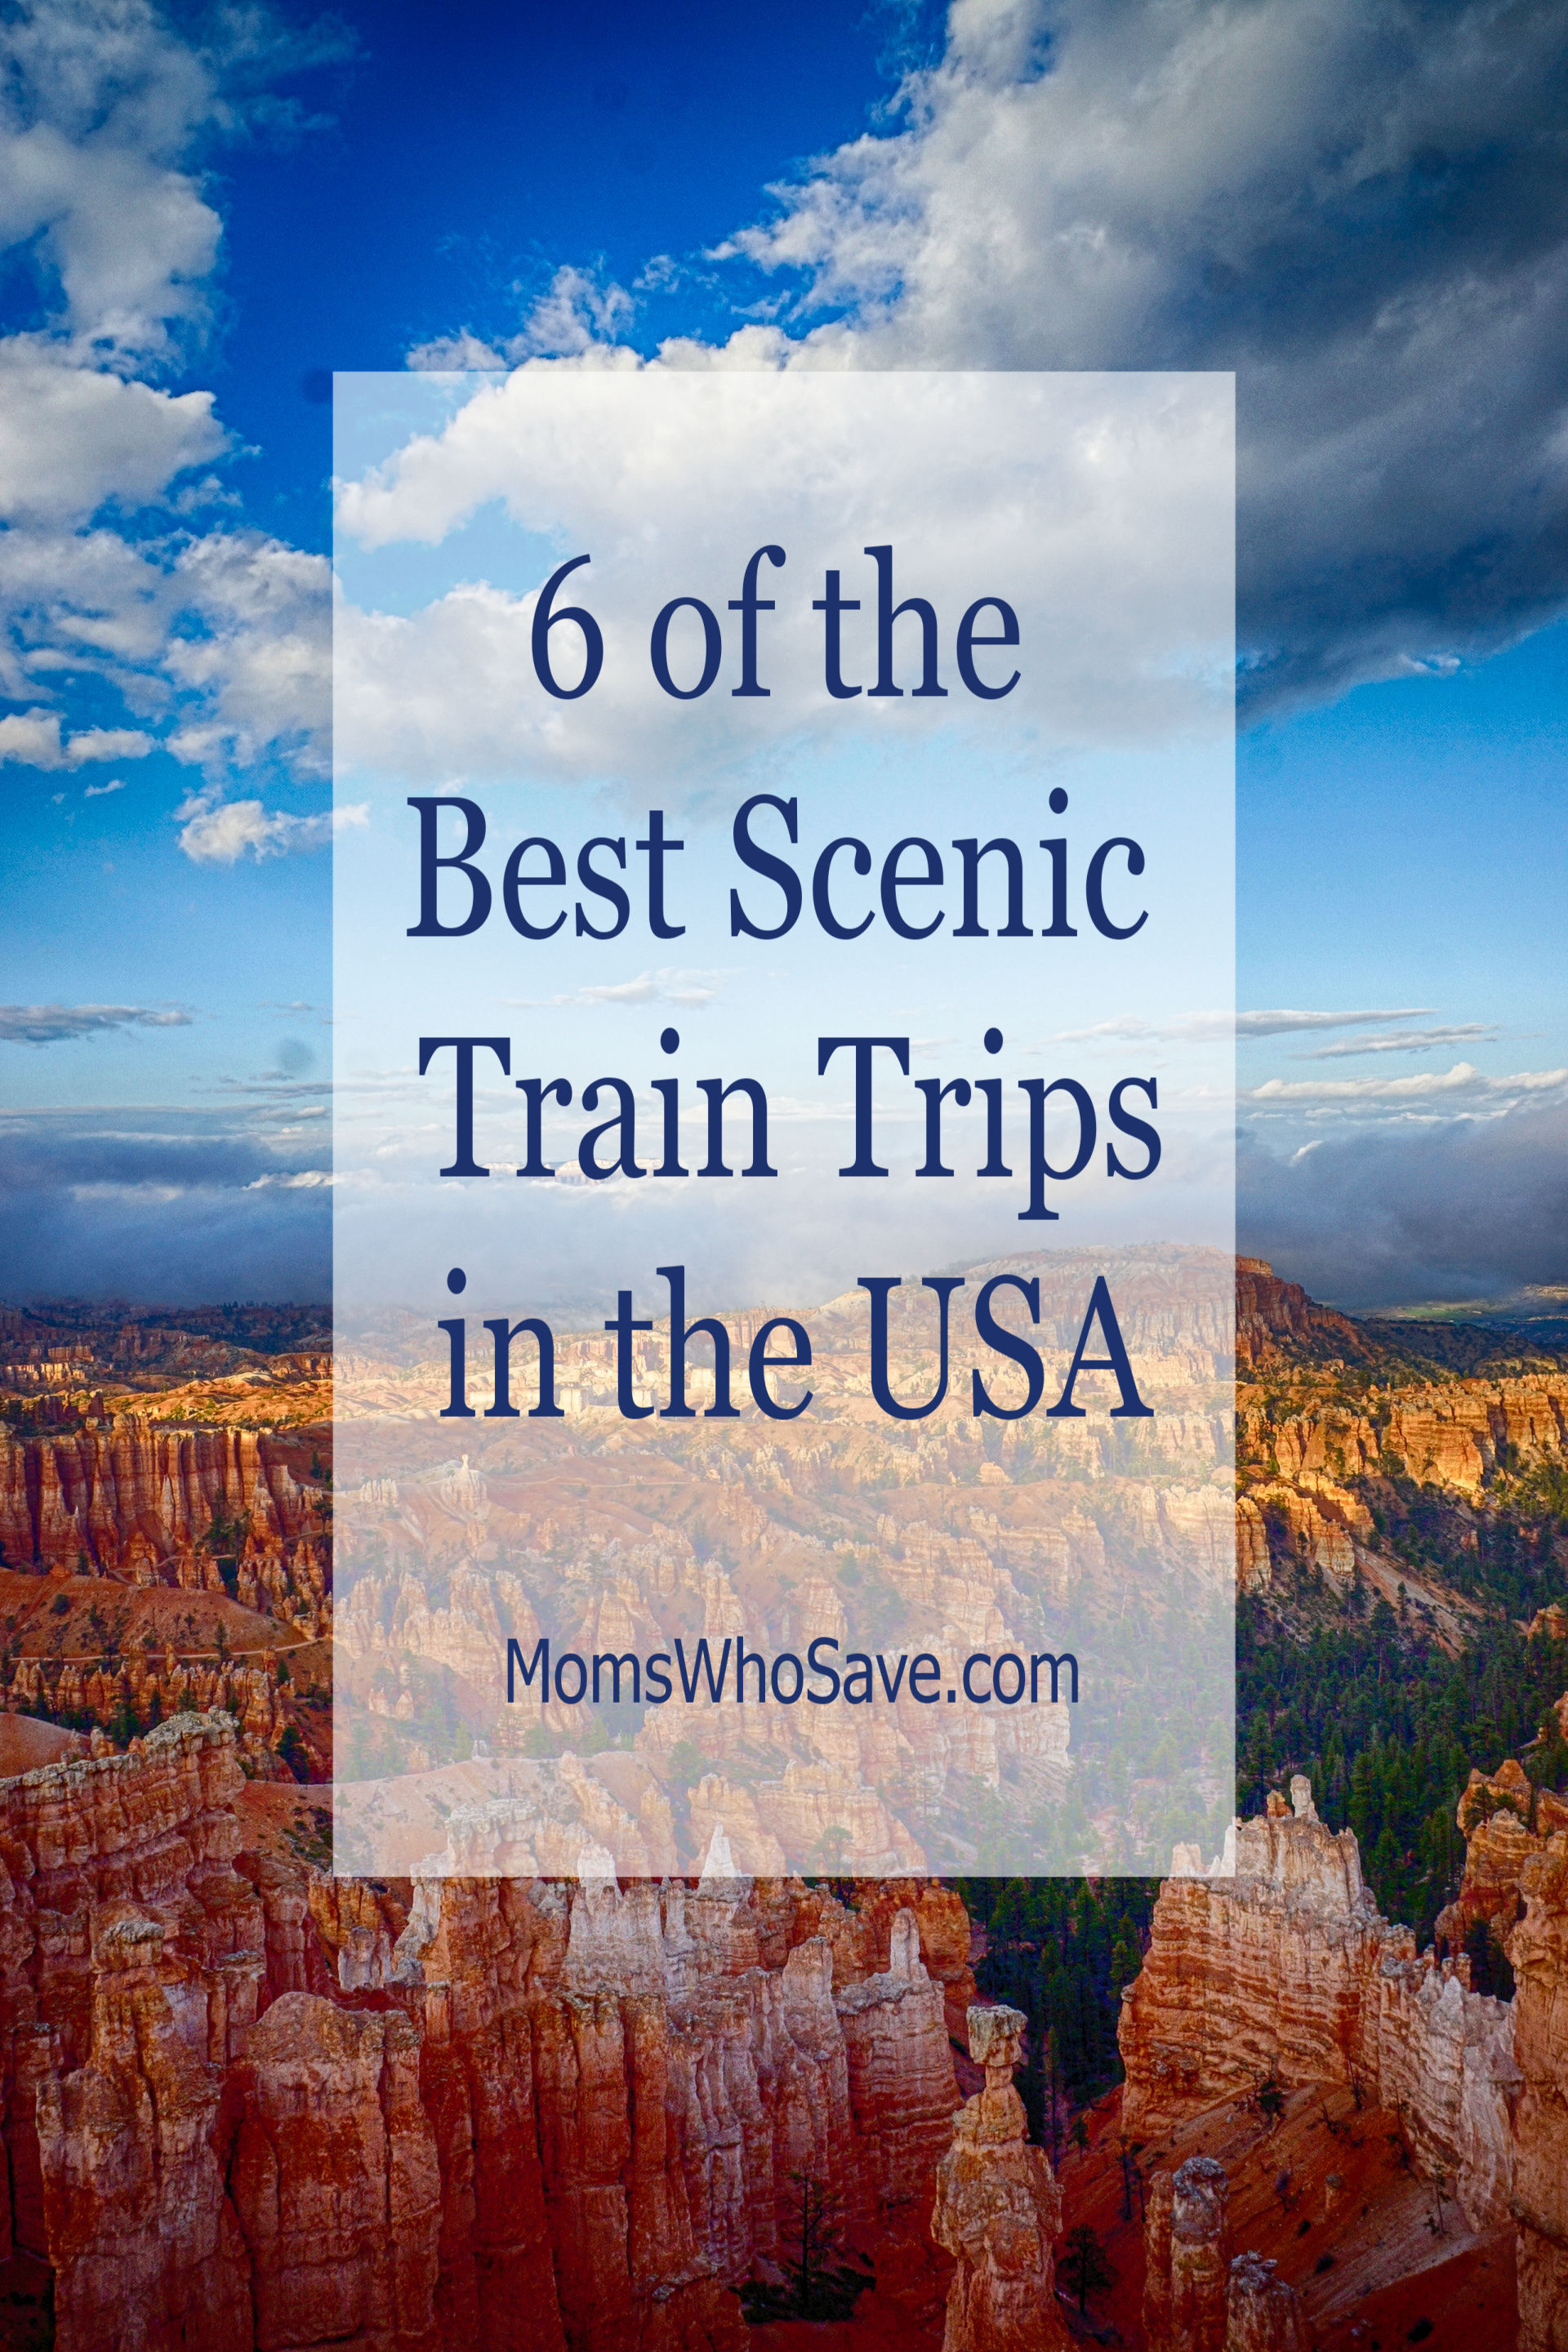 6 of the Best Scenic Train Trips in the USA